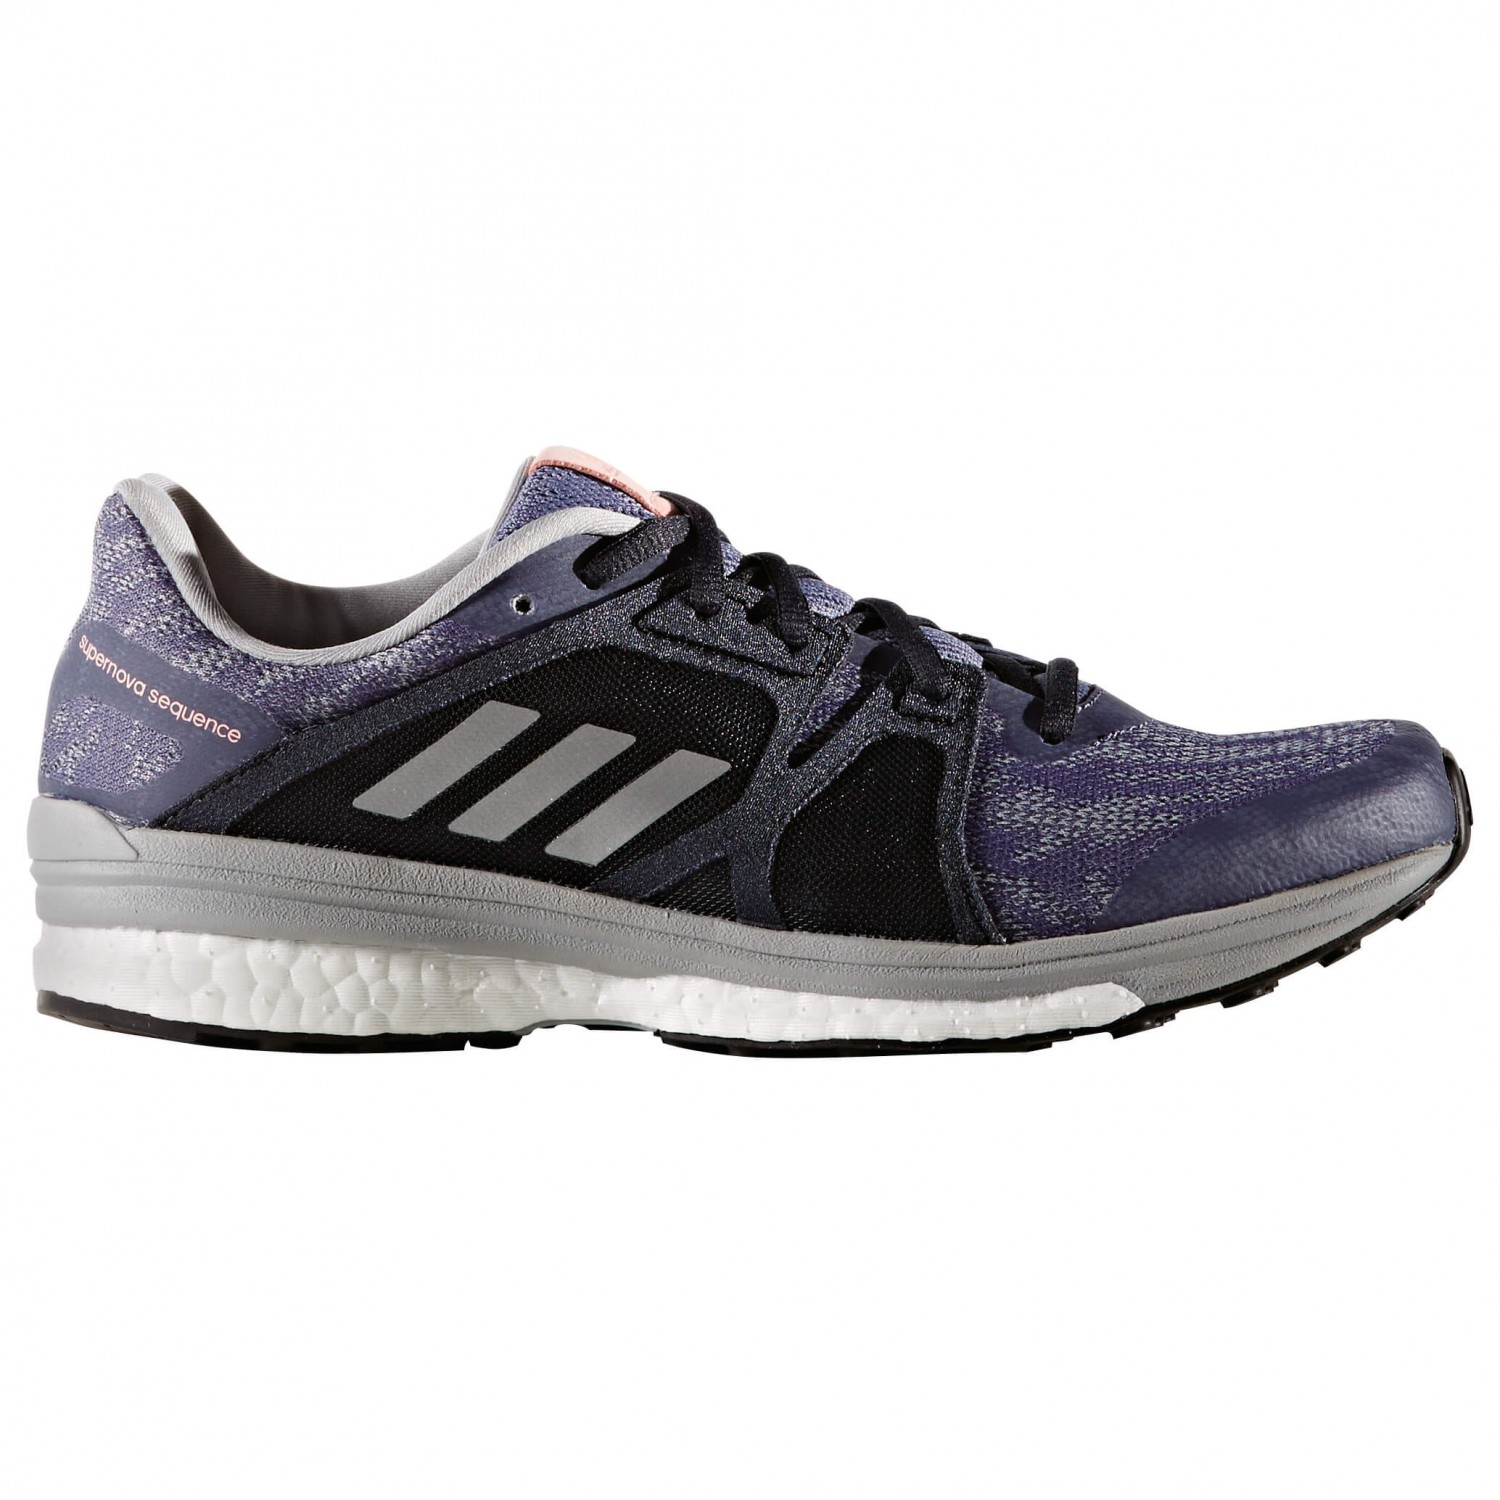 Adidas Supernova Sequence 9 - Running shoes Women's | Buy ...